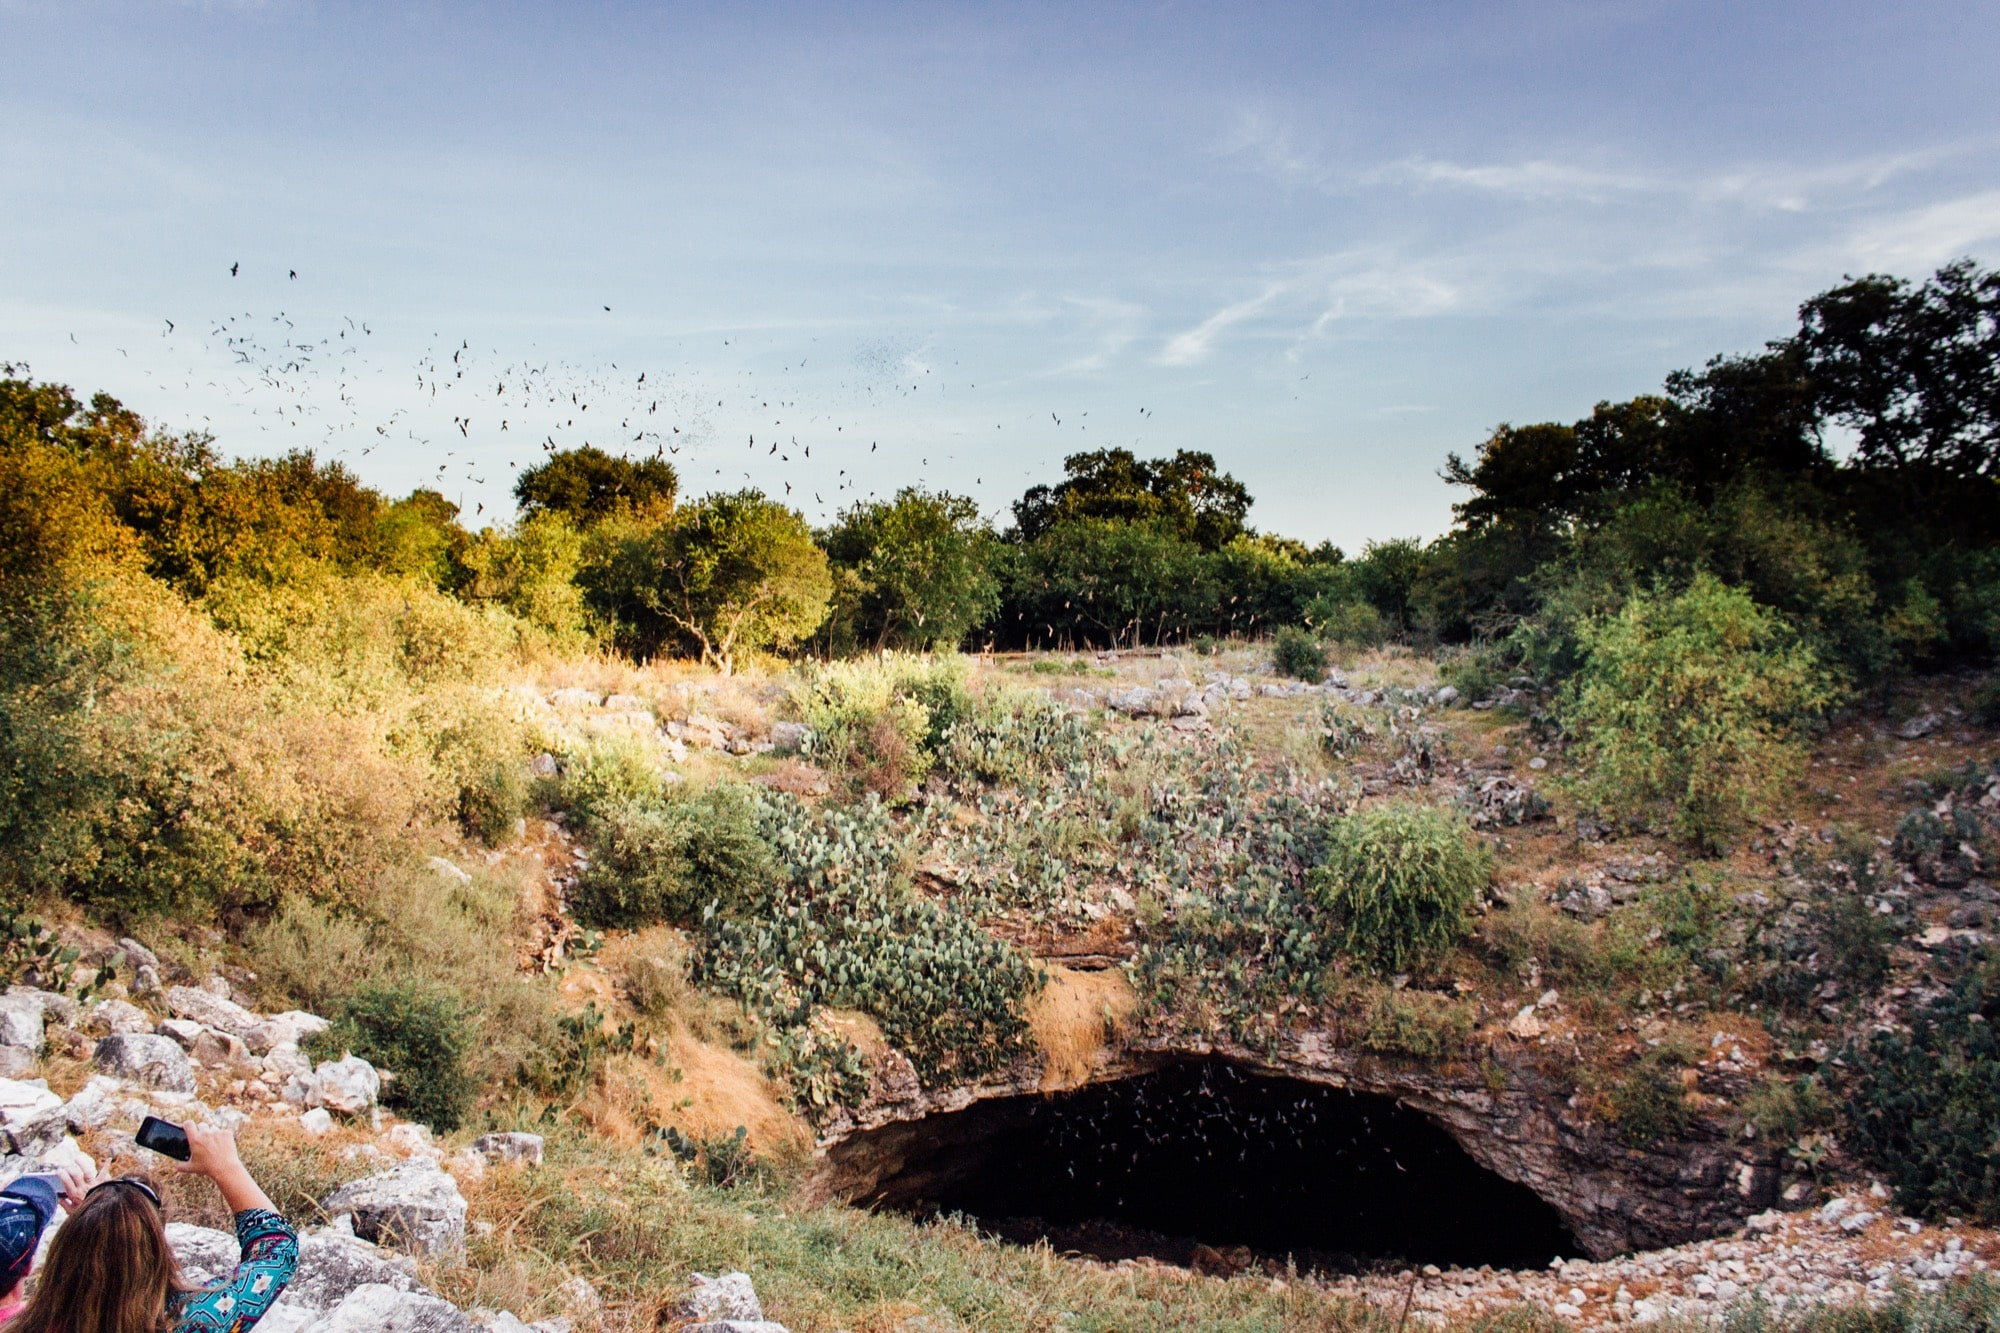 a landscape, including a cave, with bats flying out of it